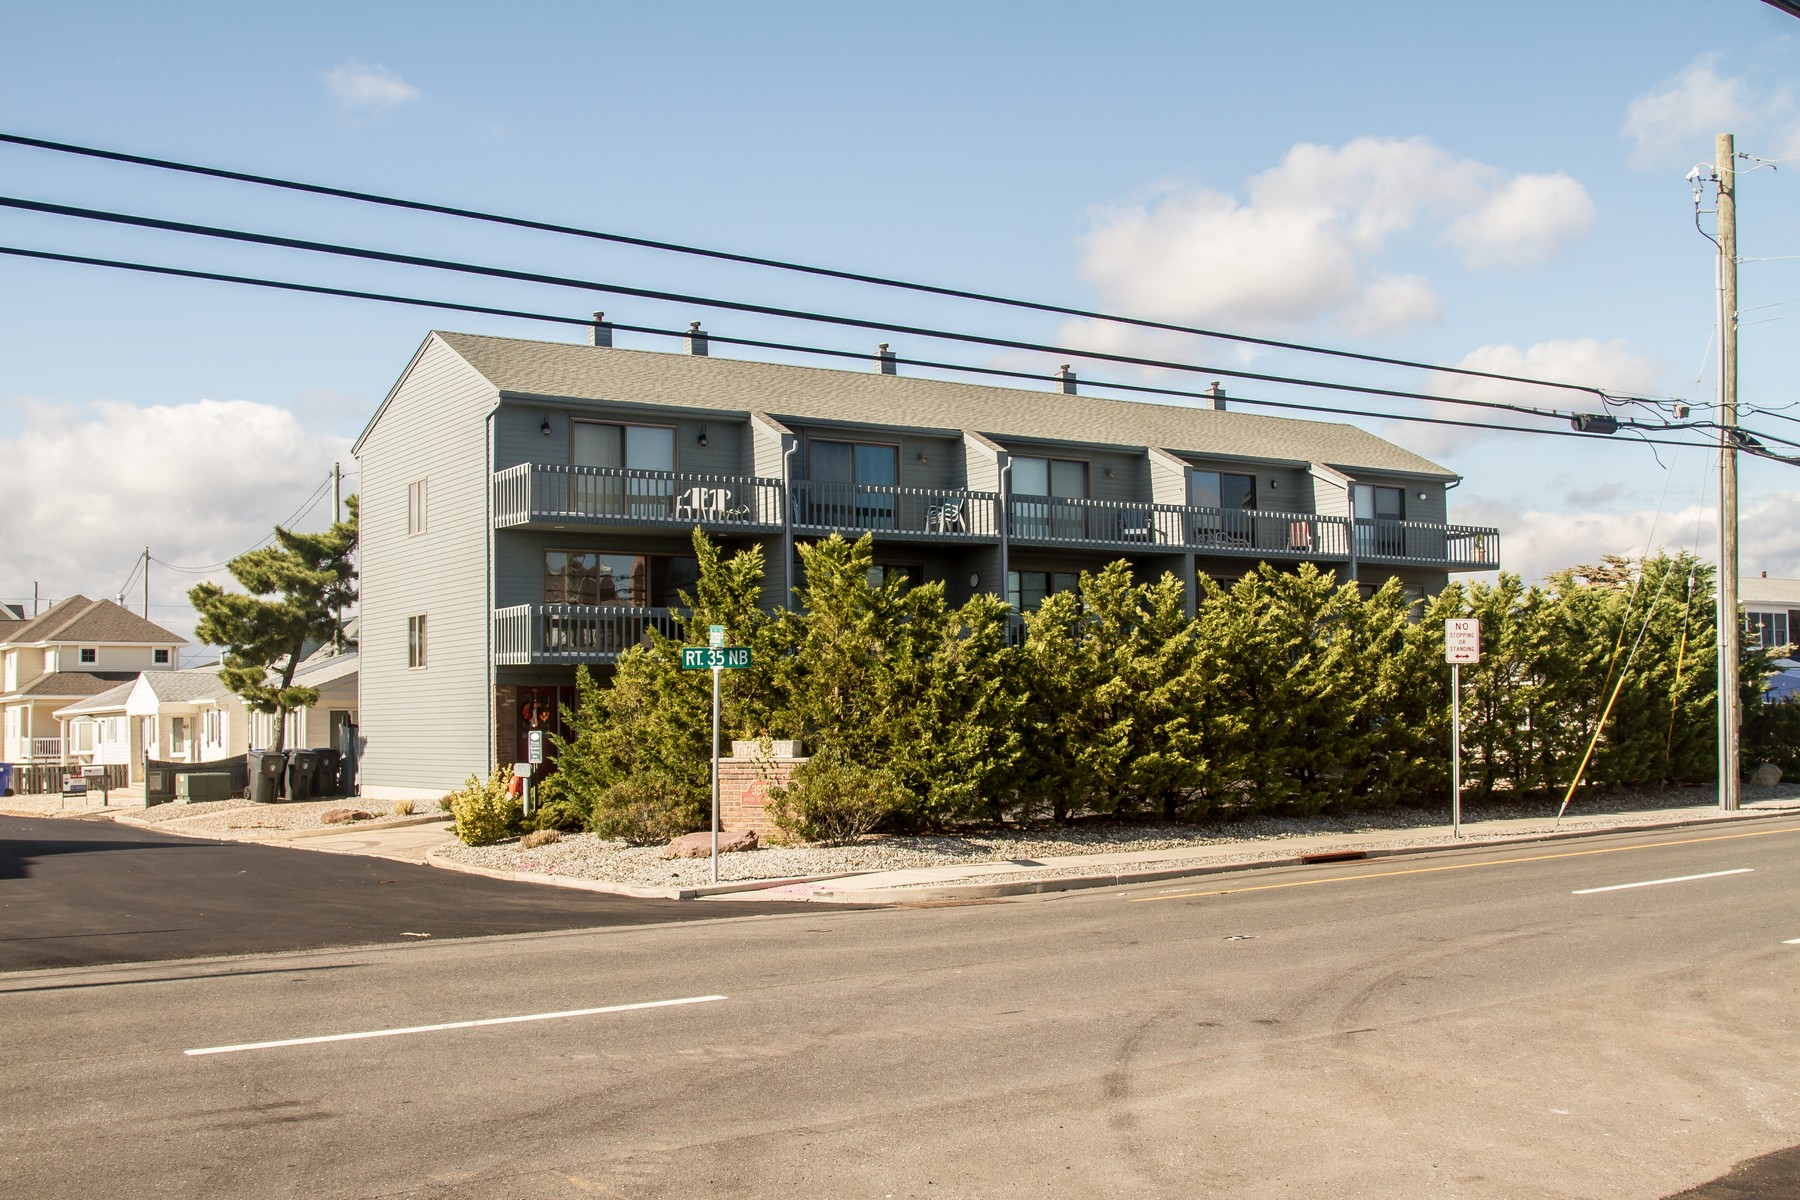 Townhouse for Sale at Large Townhouse Only One Block To The Beach 3575-4 Route 35 N, Lavallette, New Jersey 08735 United States